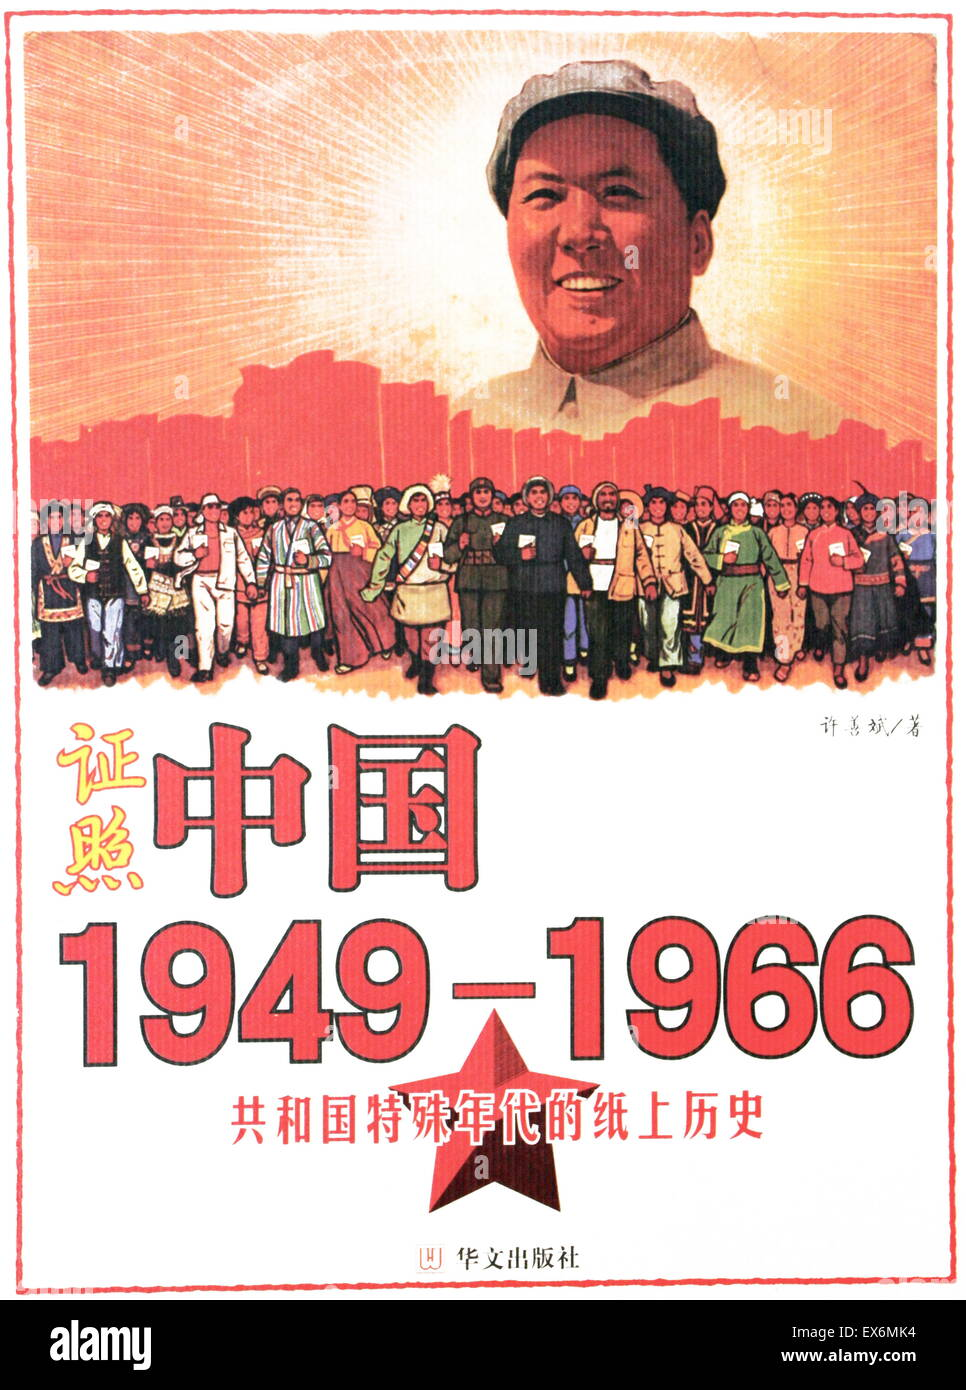 Mao Zedong (Mao Tse-tung December 26, 1893 – September 9, 1976), Chinese Communist revolutionary shown on a propaganda - Stock Image